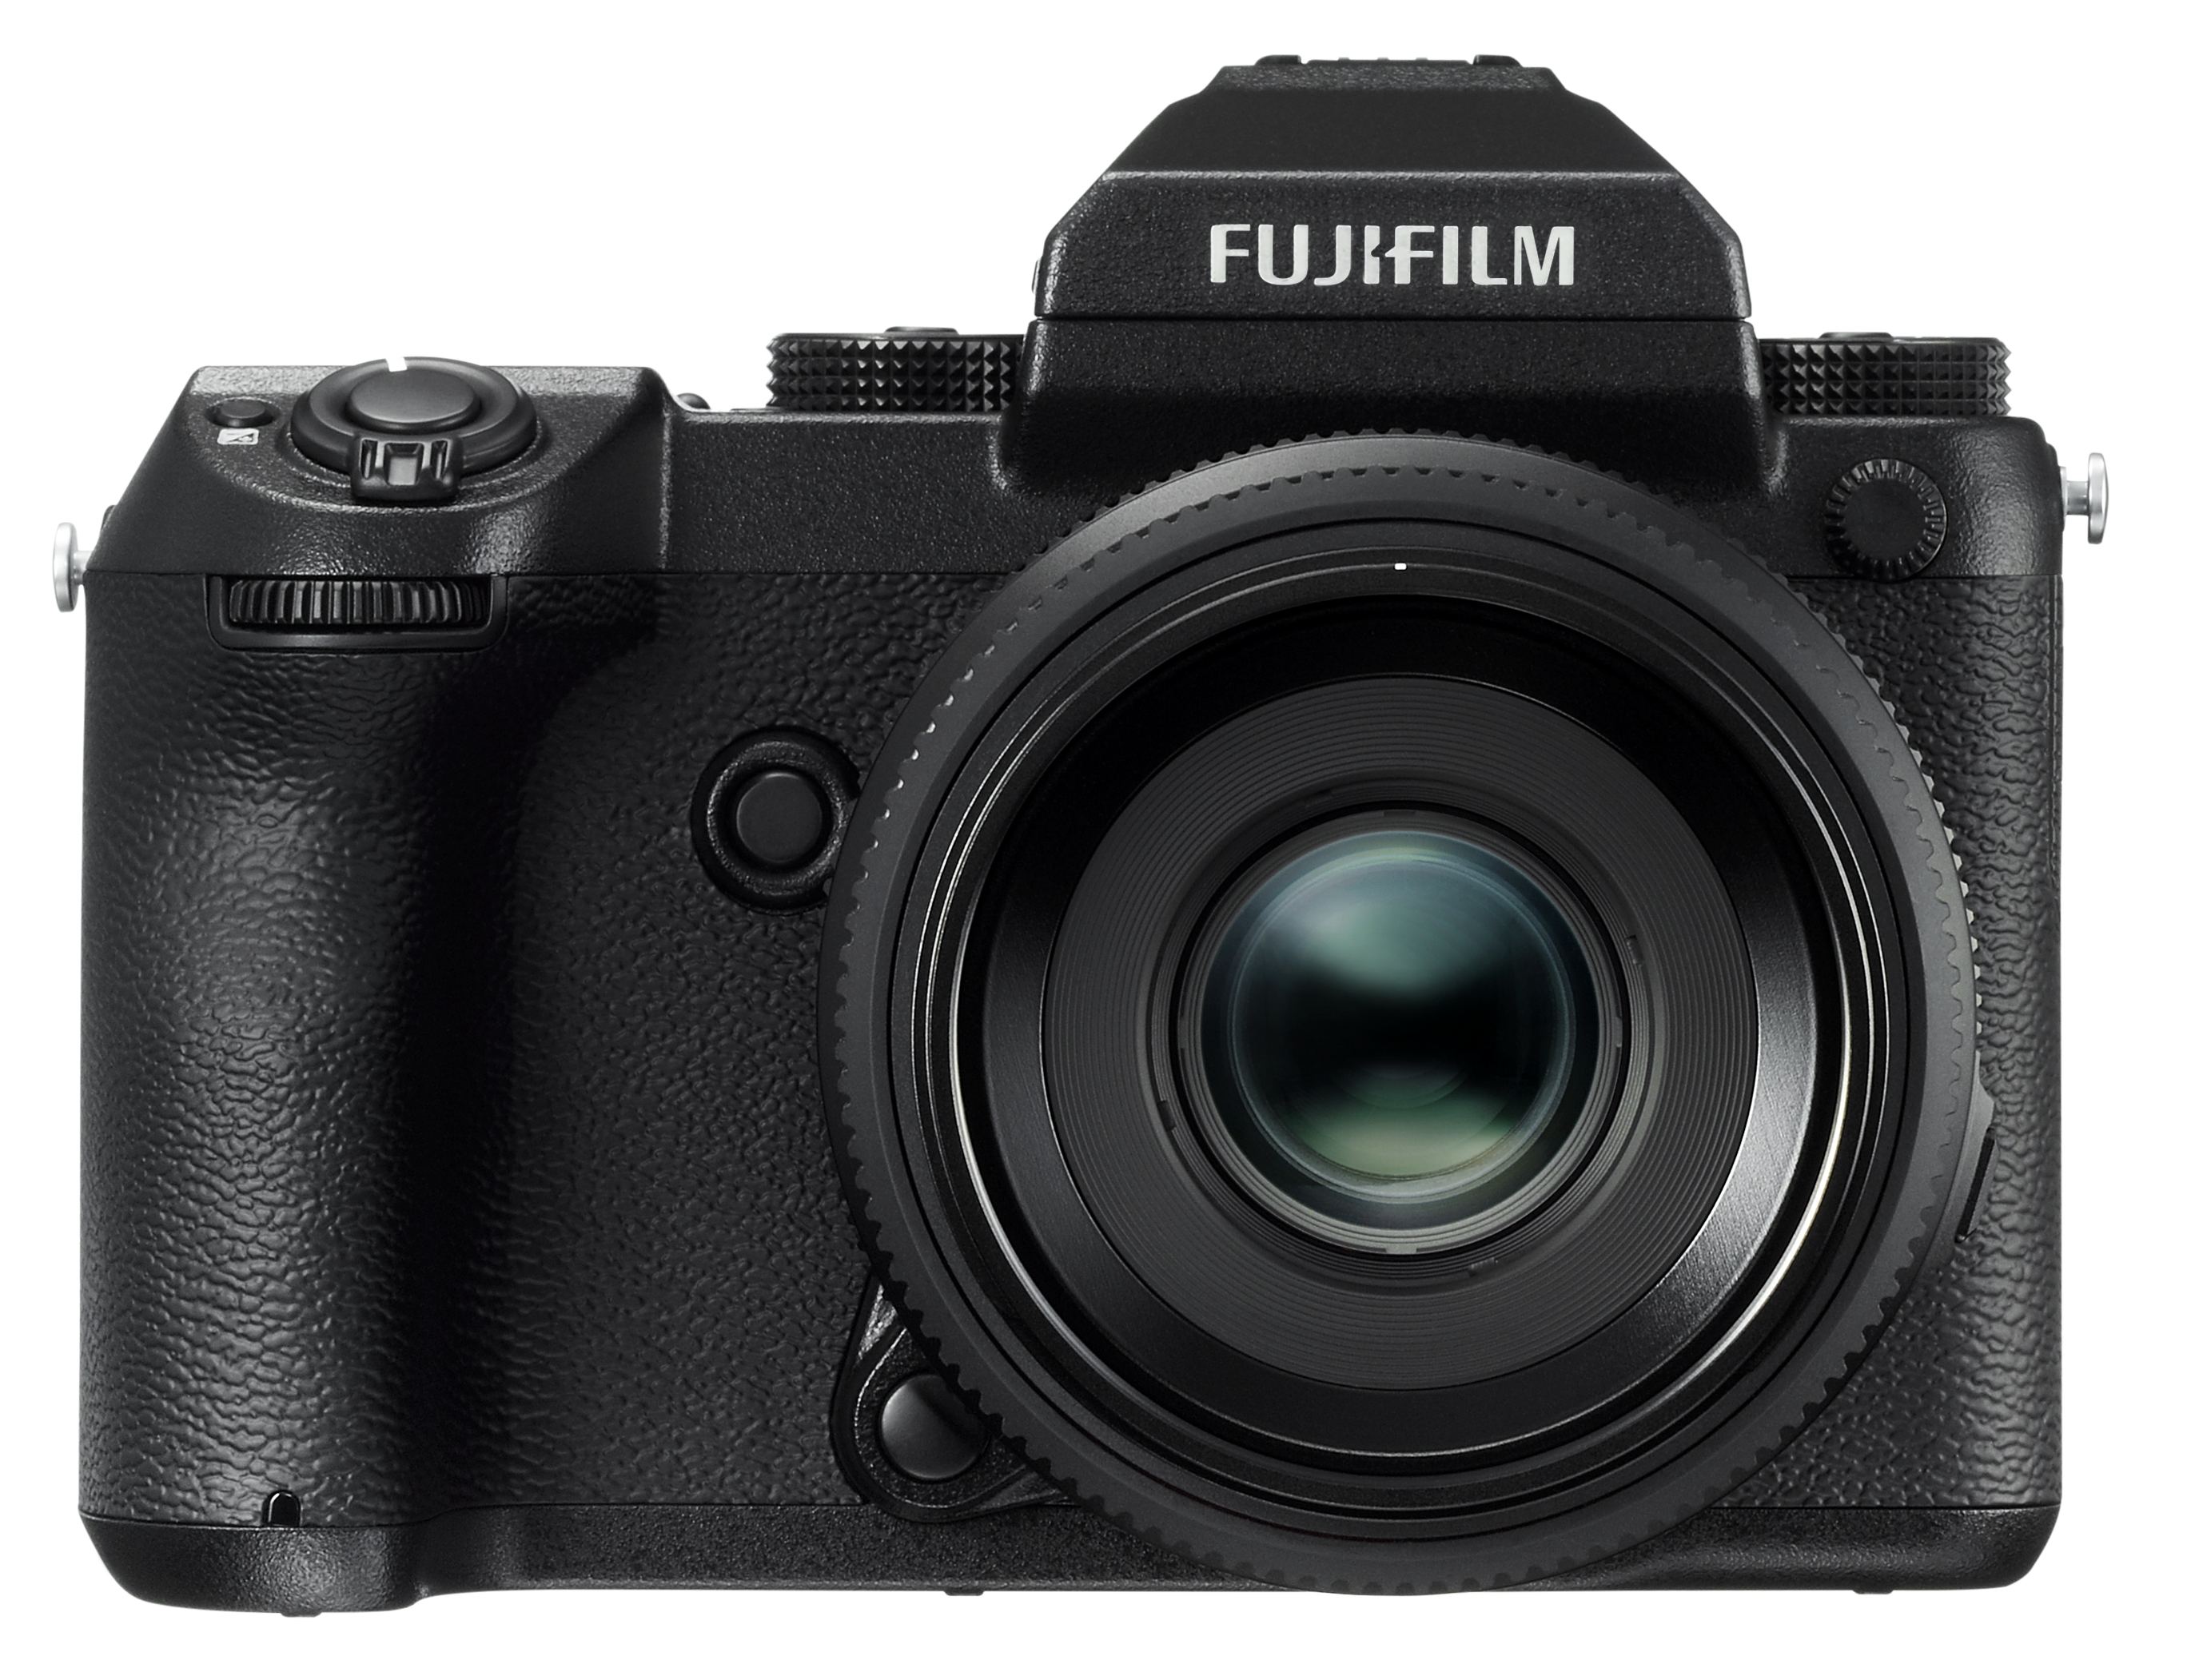 FUJIFILM annuncia la seconda fotocamera digitale mirrorless thumbnail